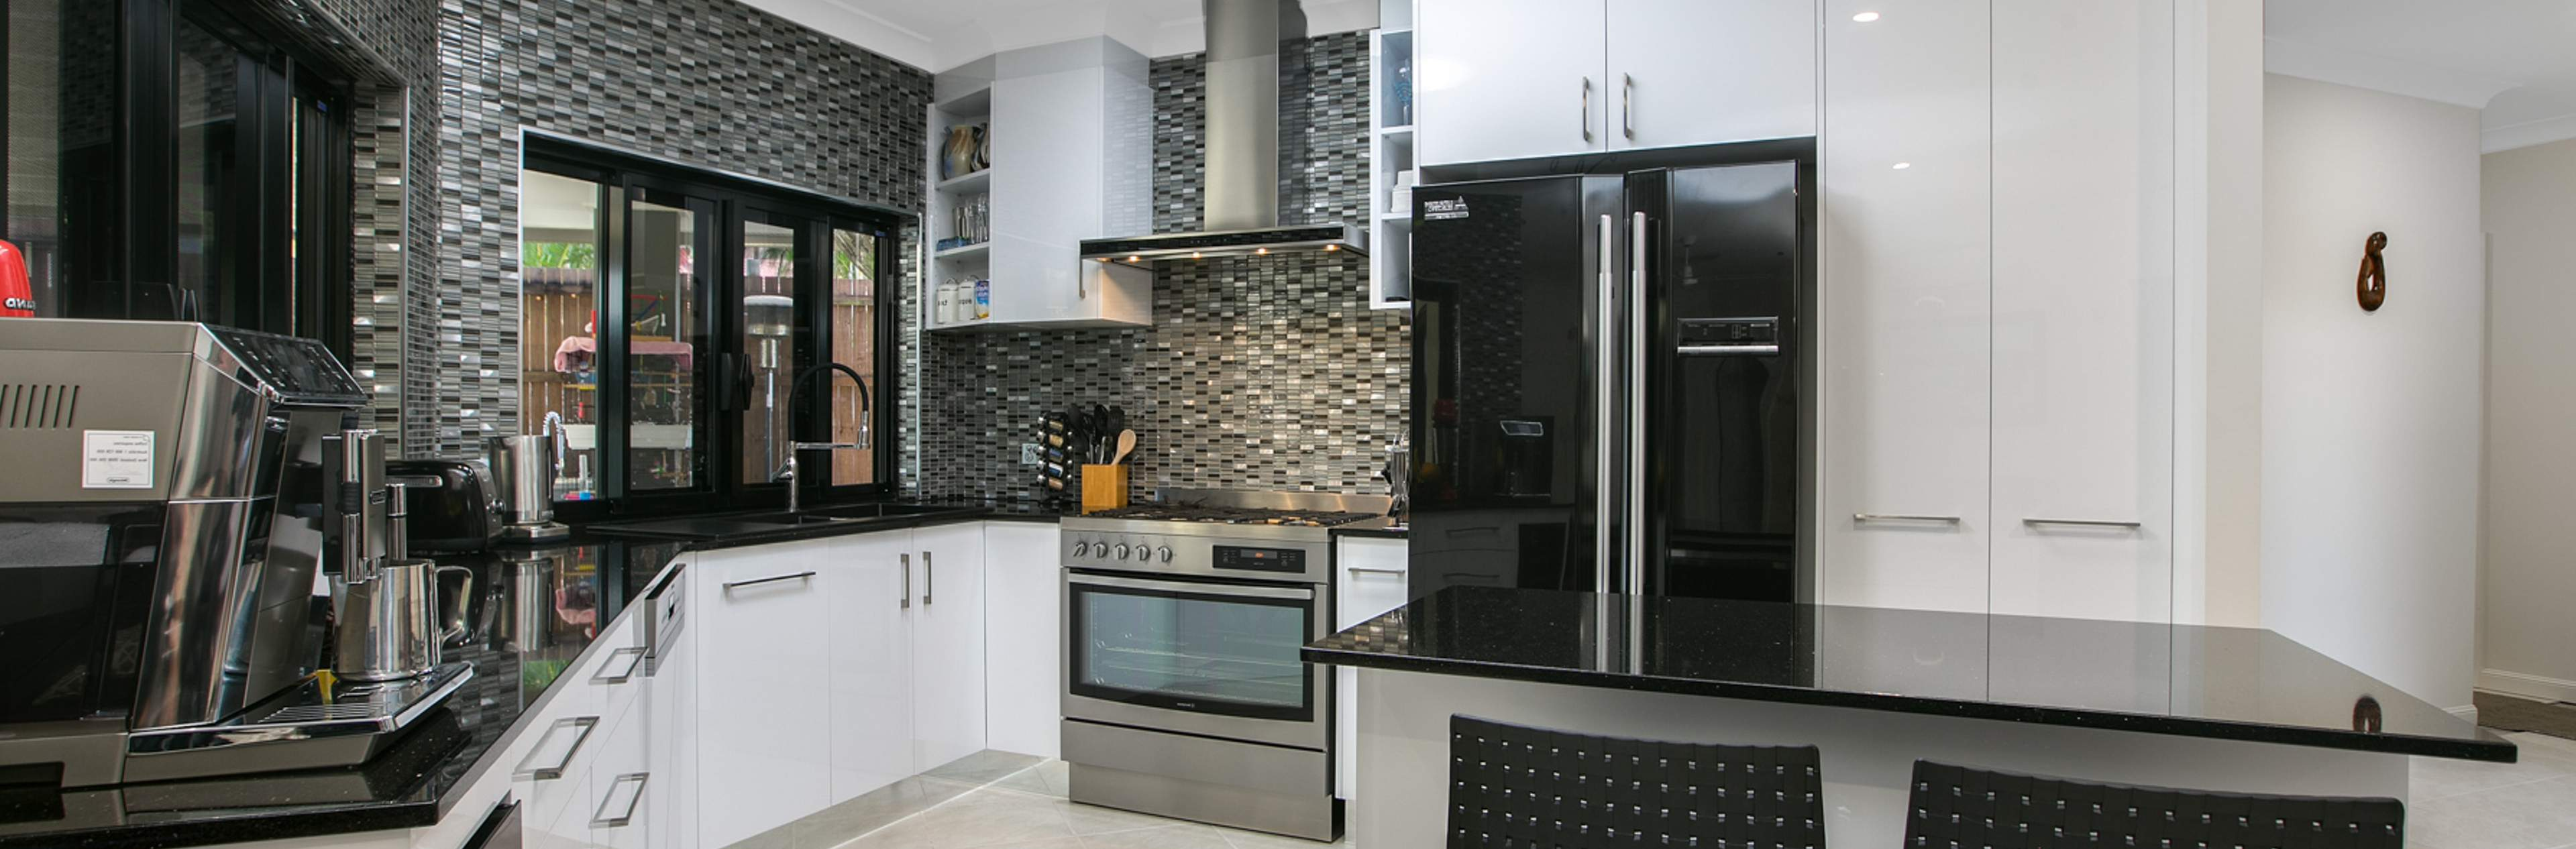 kitchen designs cairns. Style Line Cabinets is the preferred choice for quality Cairns kitchen  design and cabinet making Kitchens